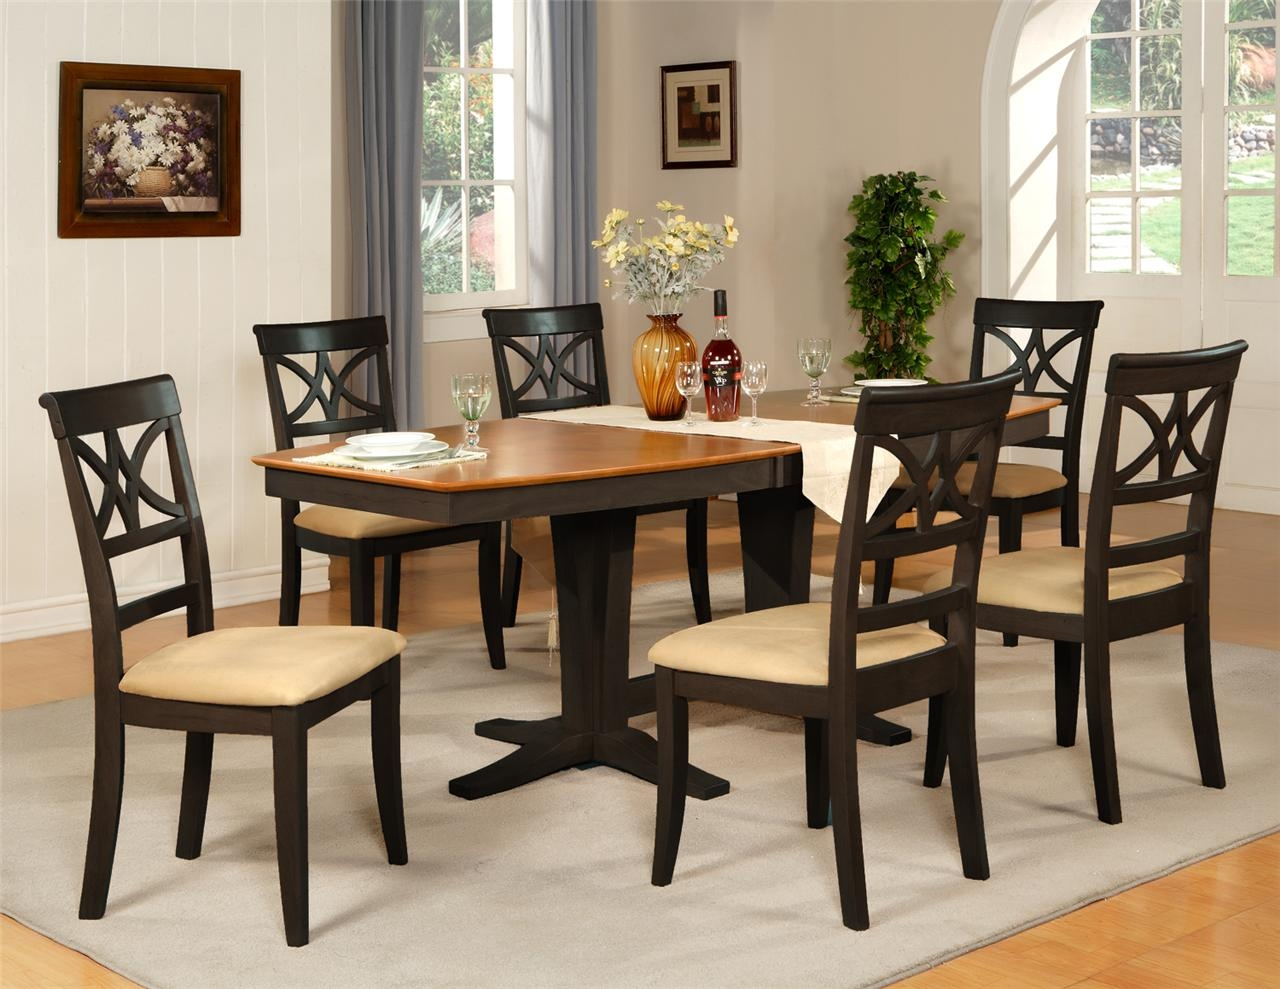 55 dining room table sets for 6 dining room table sets for 10 best